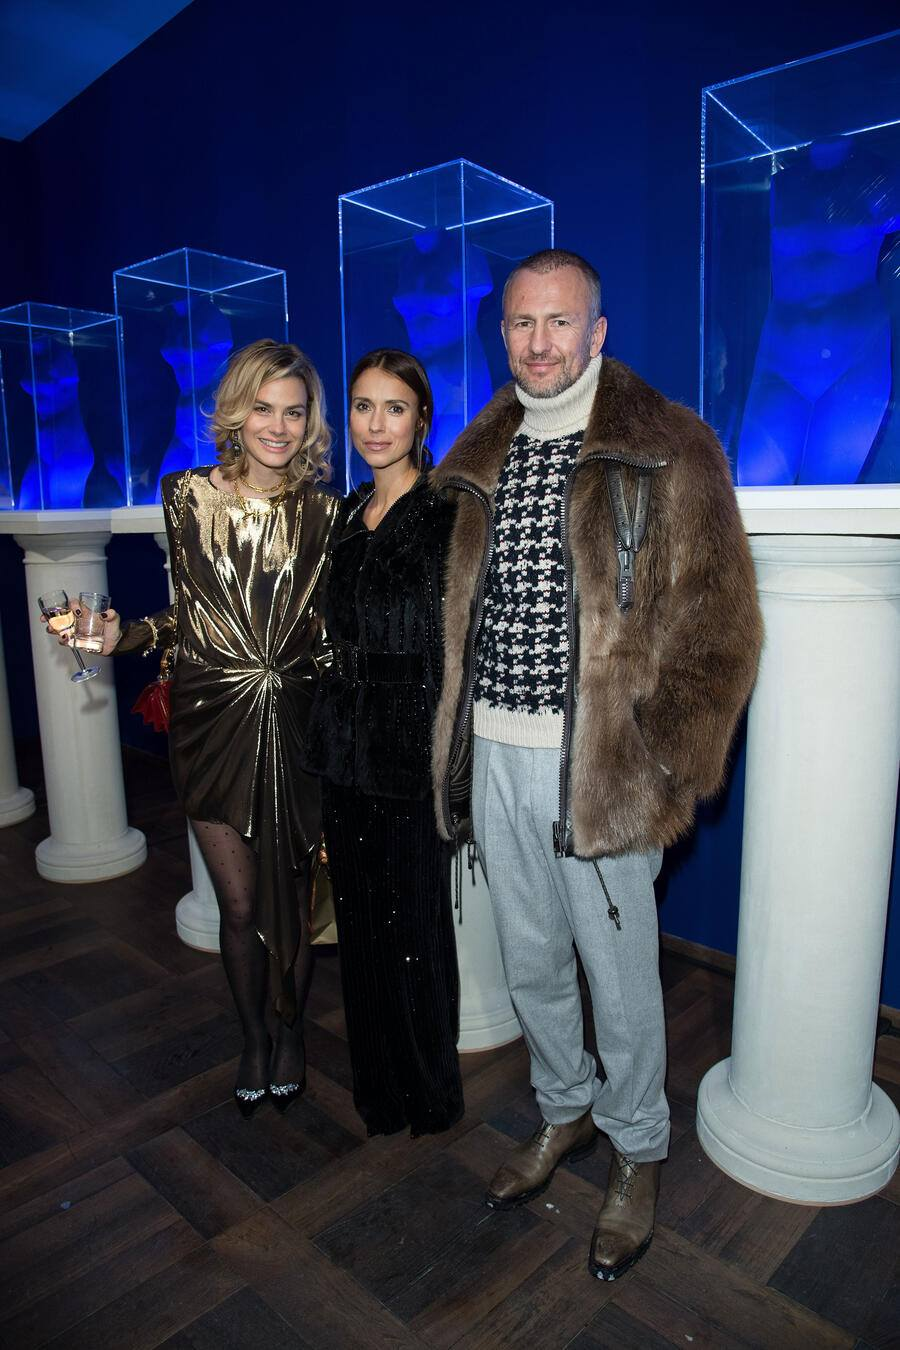 ST MORITZ, SWITZERLAND - DECEMBER 27:  Isabelle Bscher, Aleksandra Melnichenko and Andrey Melnichenko attend Galerie Gmurzynska Hosts Diana Widmaier-Picasso in Celebration of Mene 24K and Yves Klein on December 27, 2017 in St Moritz, Switzerland.  (Photo by Venturelli/Getty Images)